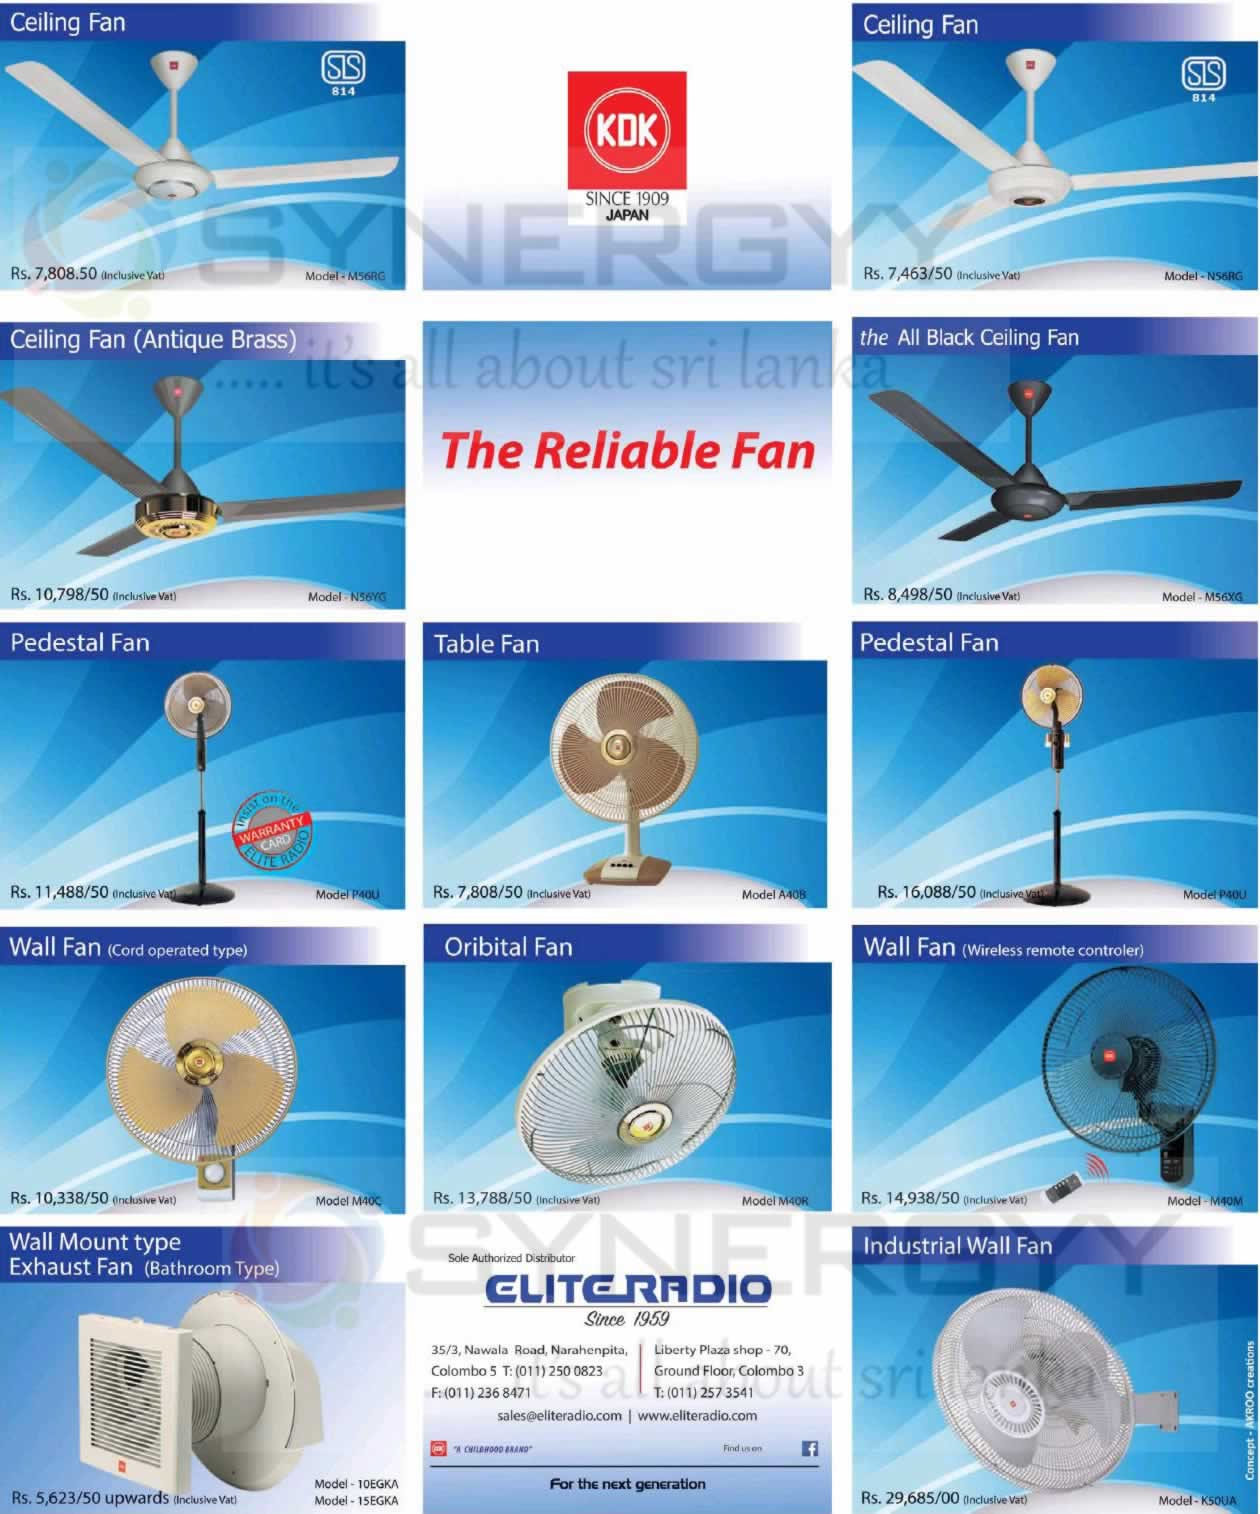 Kdk Ceiling Fans Dealers In Sri Lanka